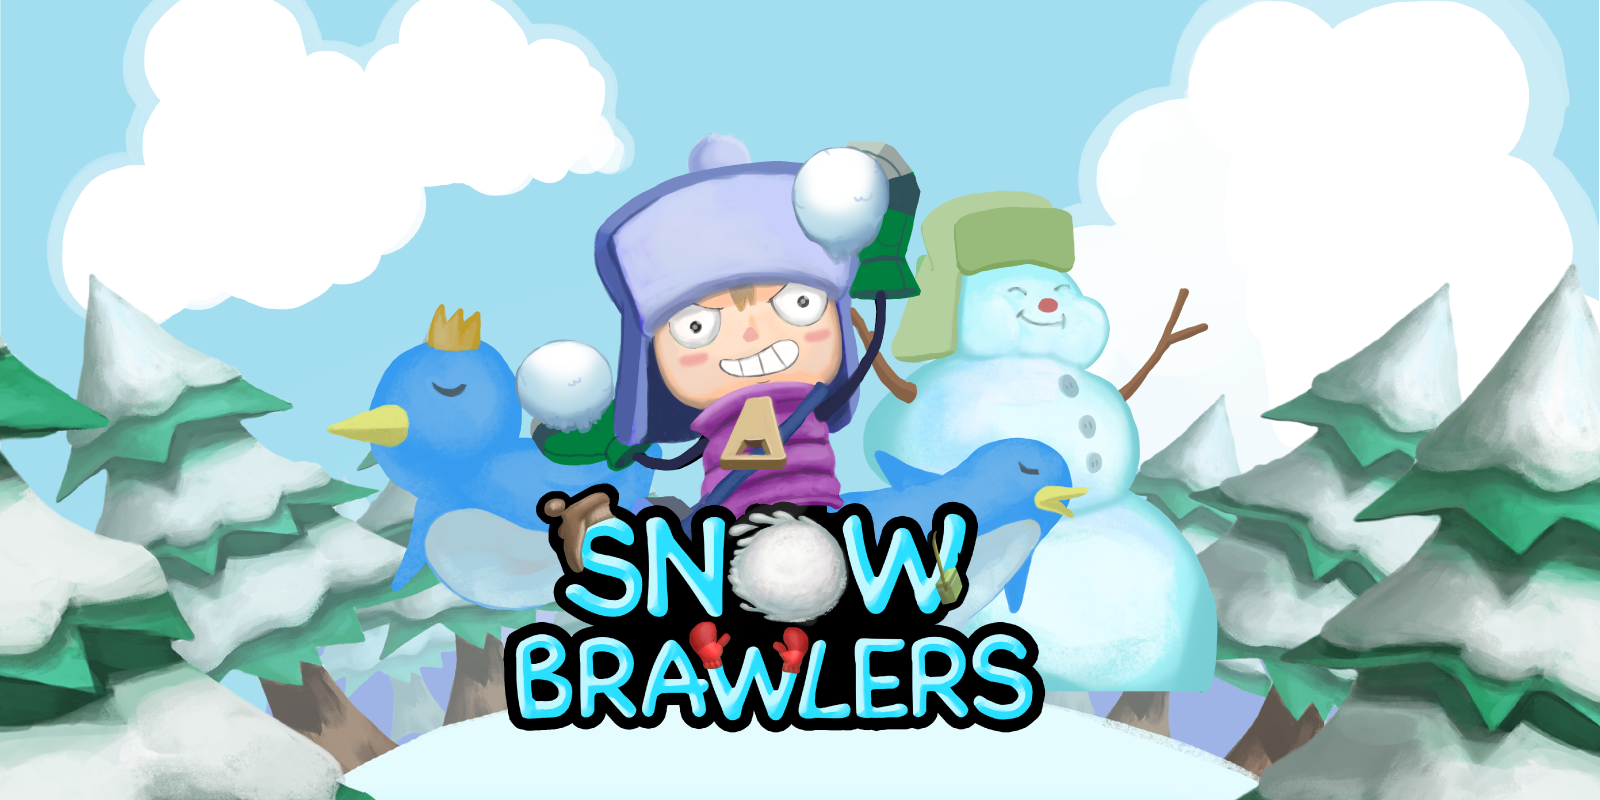 Snow Brawlers